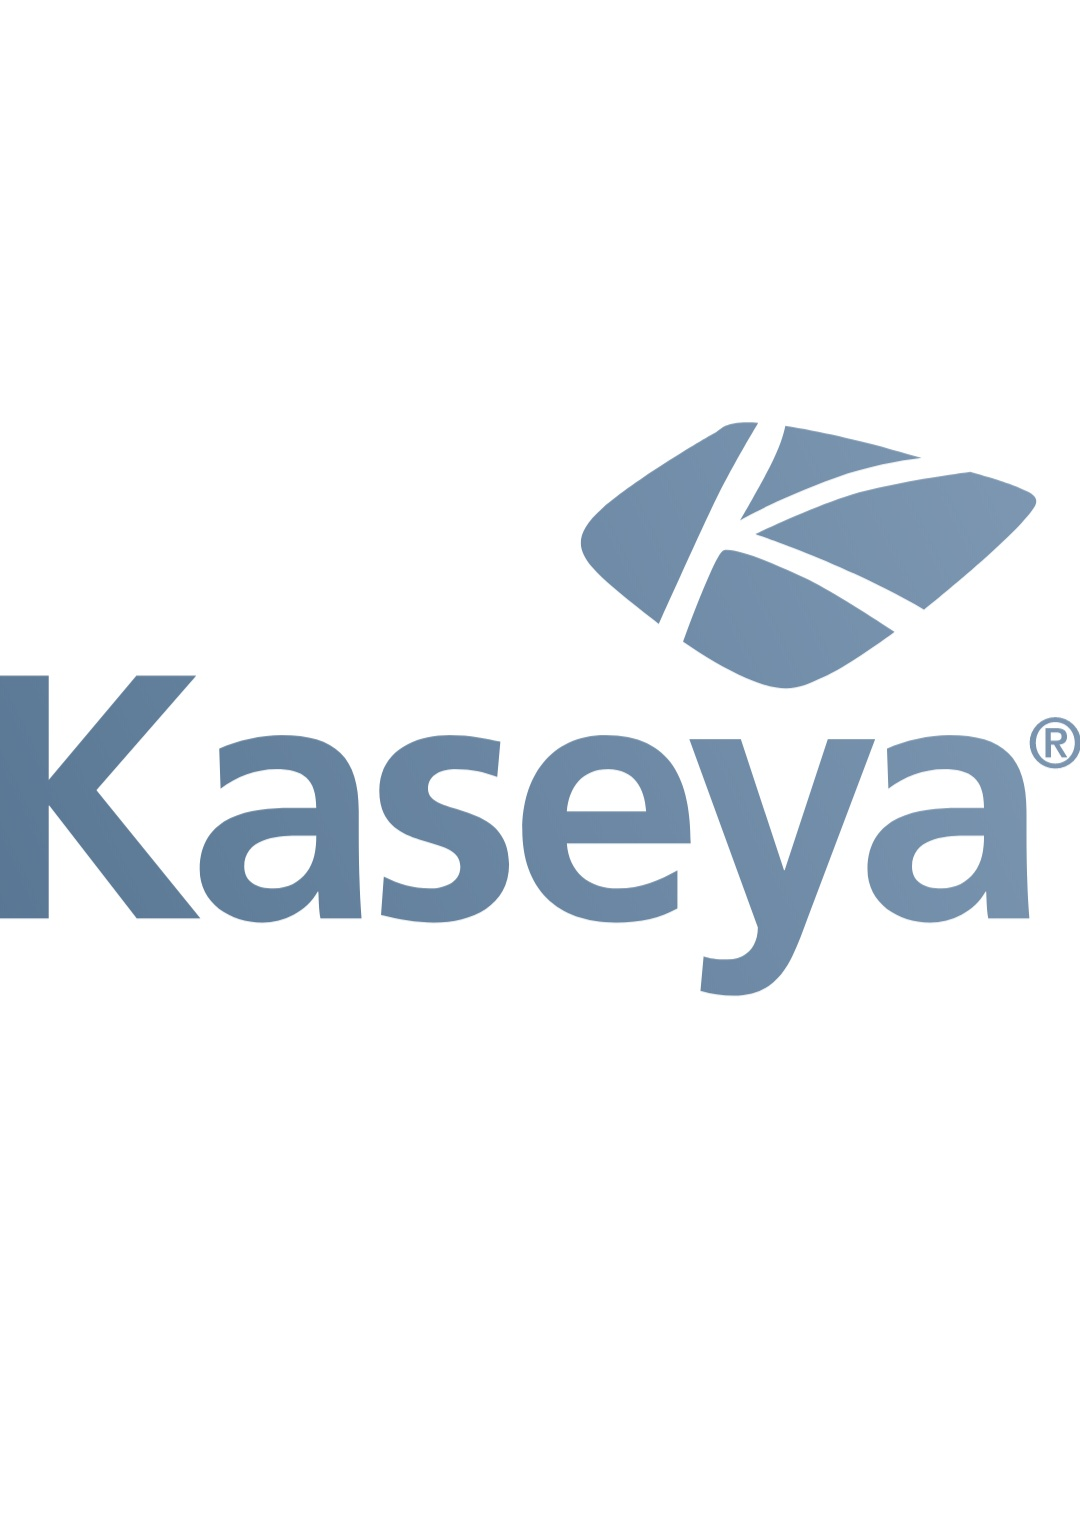 graphic-designer-banglore-Kaseya-5years-6years-full-time